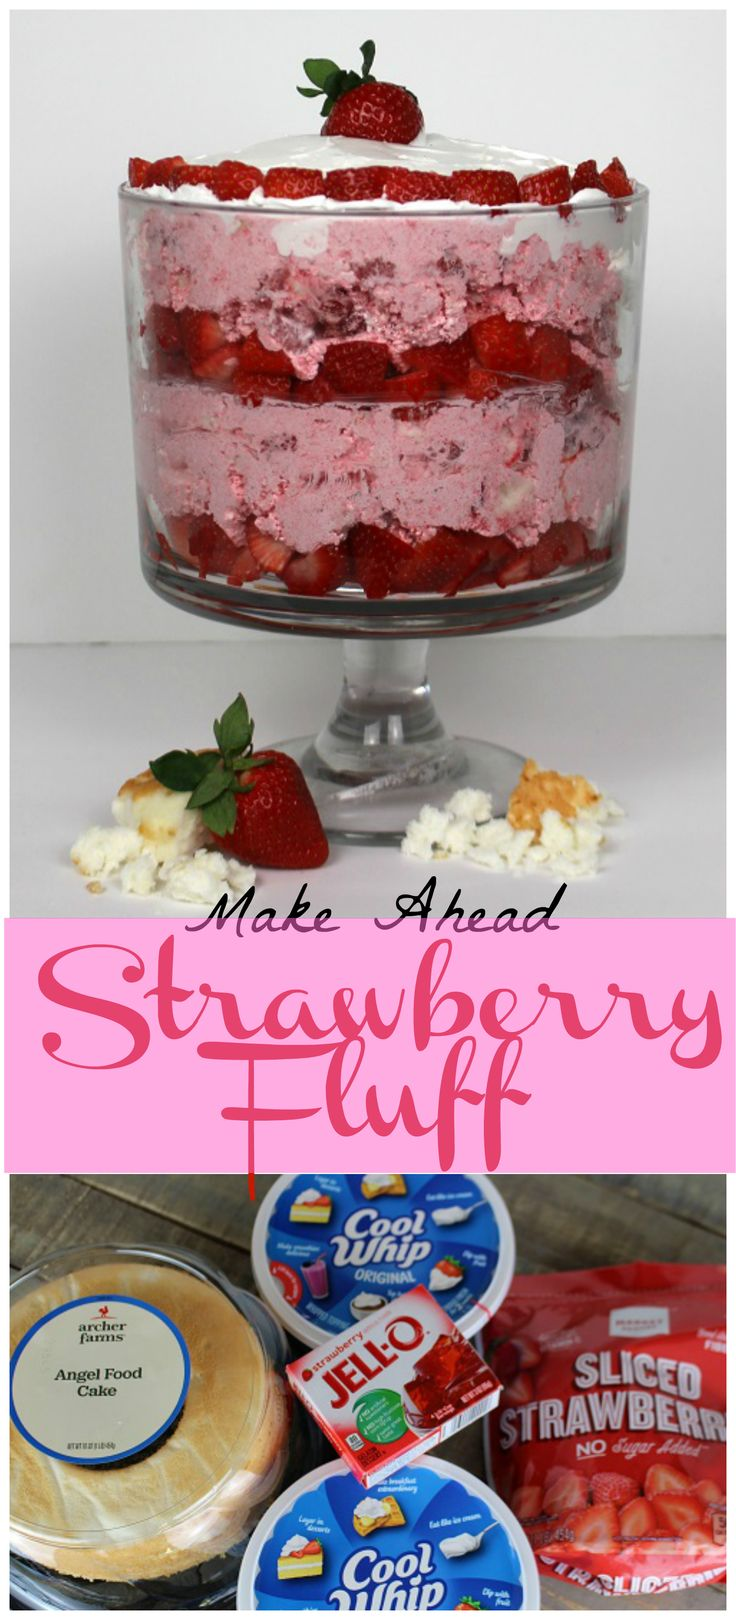 This ridiculously delicious, make ahead, quick and easy Strawberry Fluff dessert only uses four simple ingredients. This recipe a keeper for sure!! http://glitterandgoulash.com/quick-and-easy-make-ahead-str…/